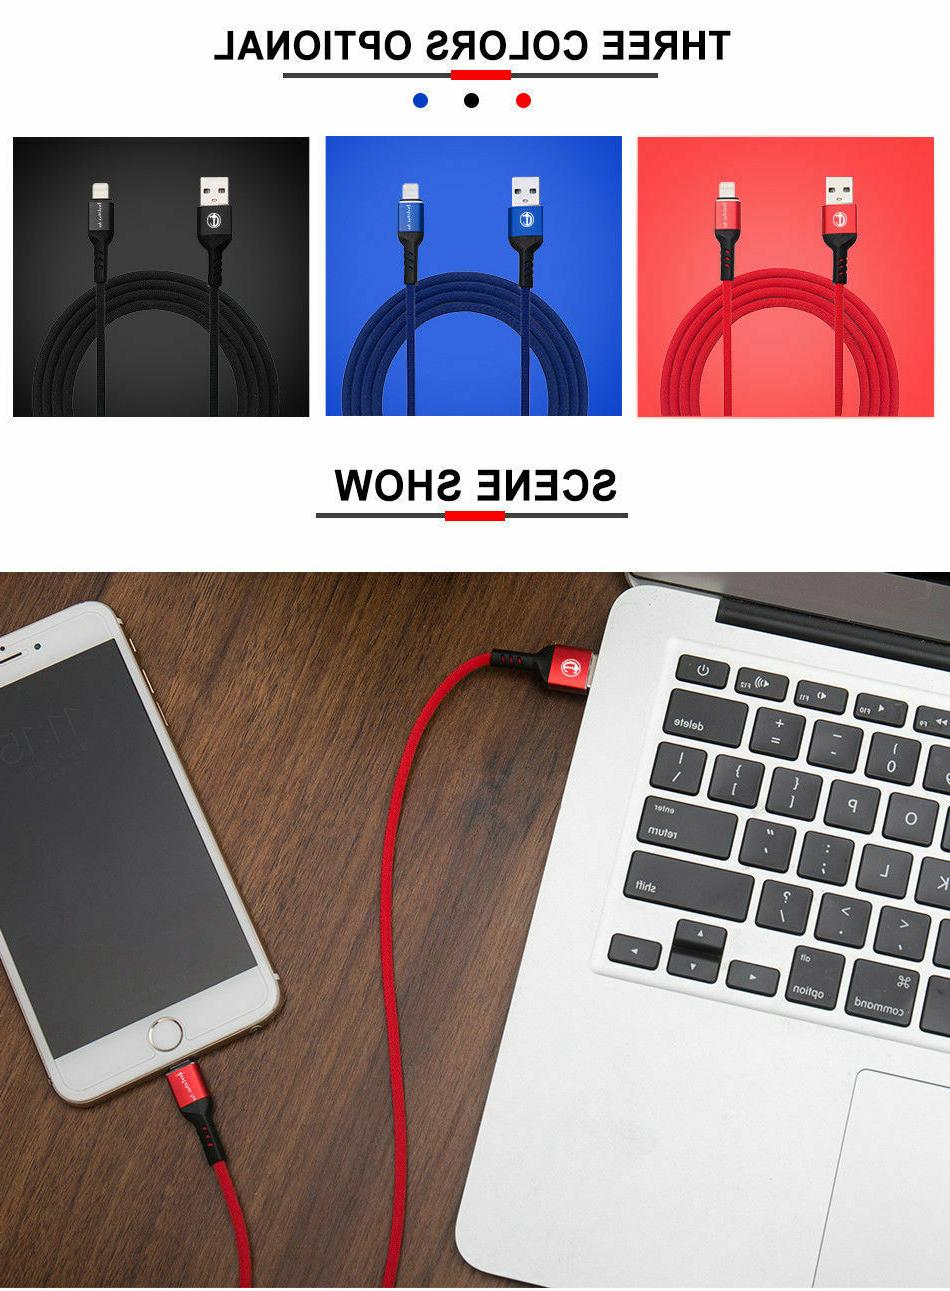 For 6 7 8 5 Lightning Cable Heavy